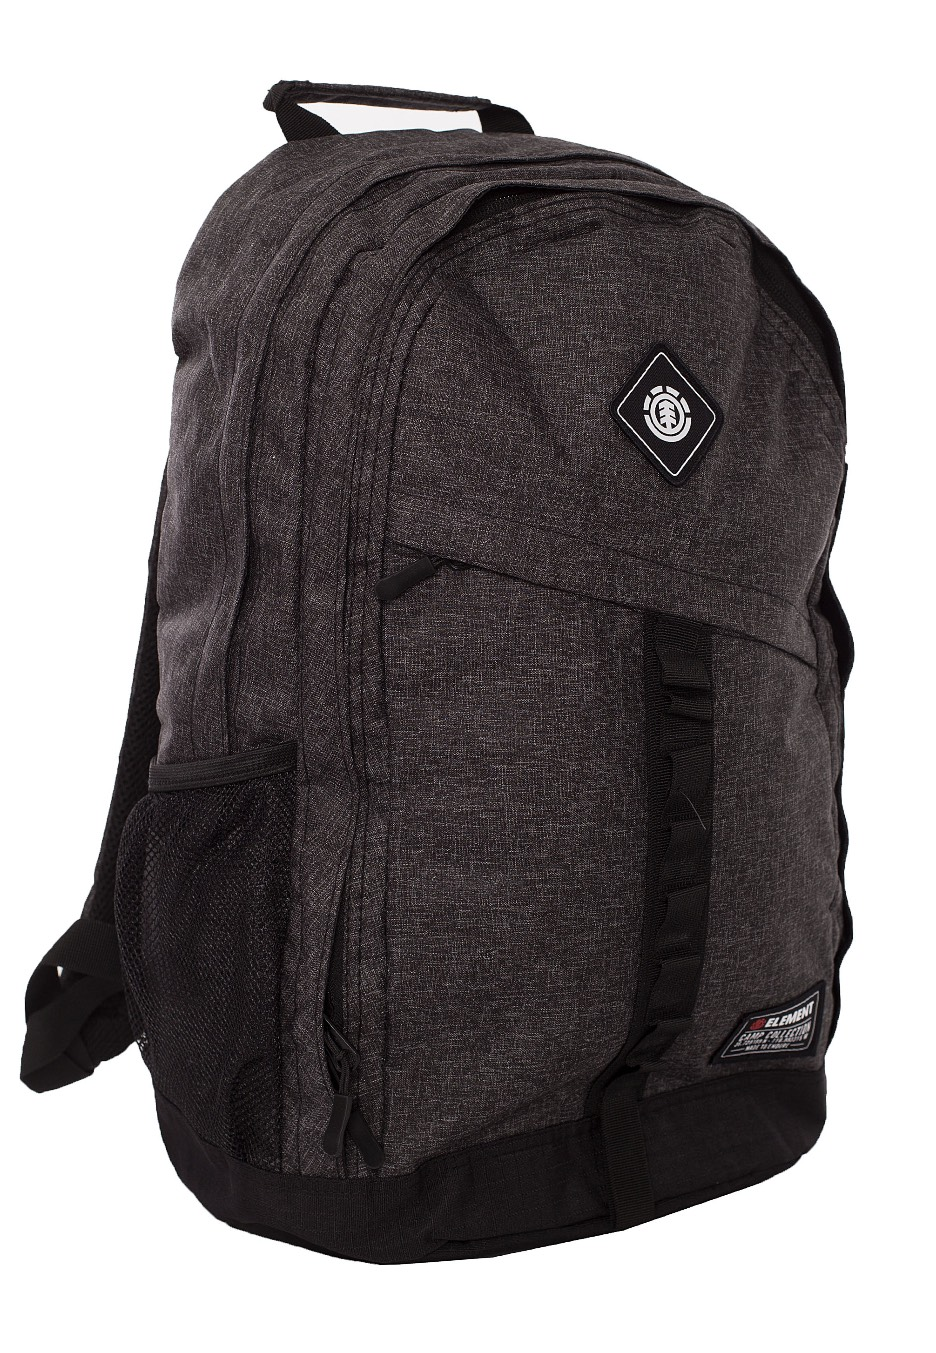 679830c632a8 Hype Black Mesh Pocket Backpack- Fenix Toulouse Handball